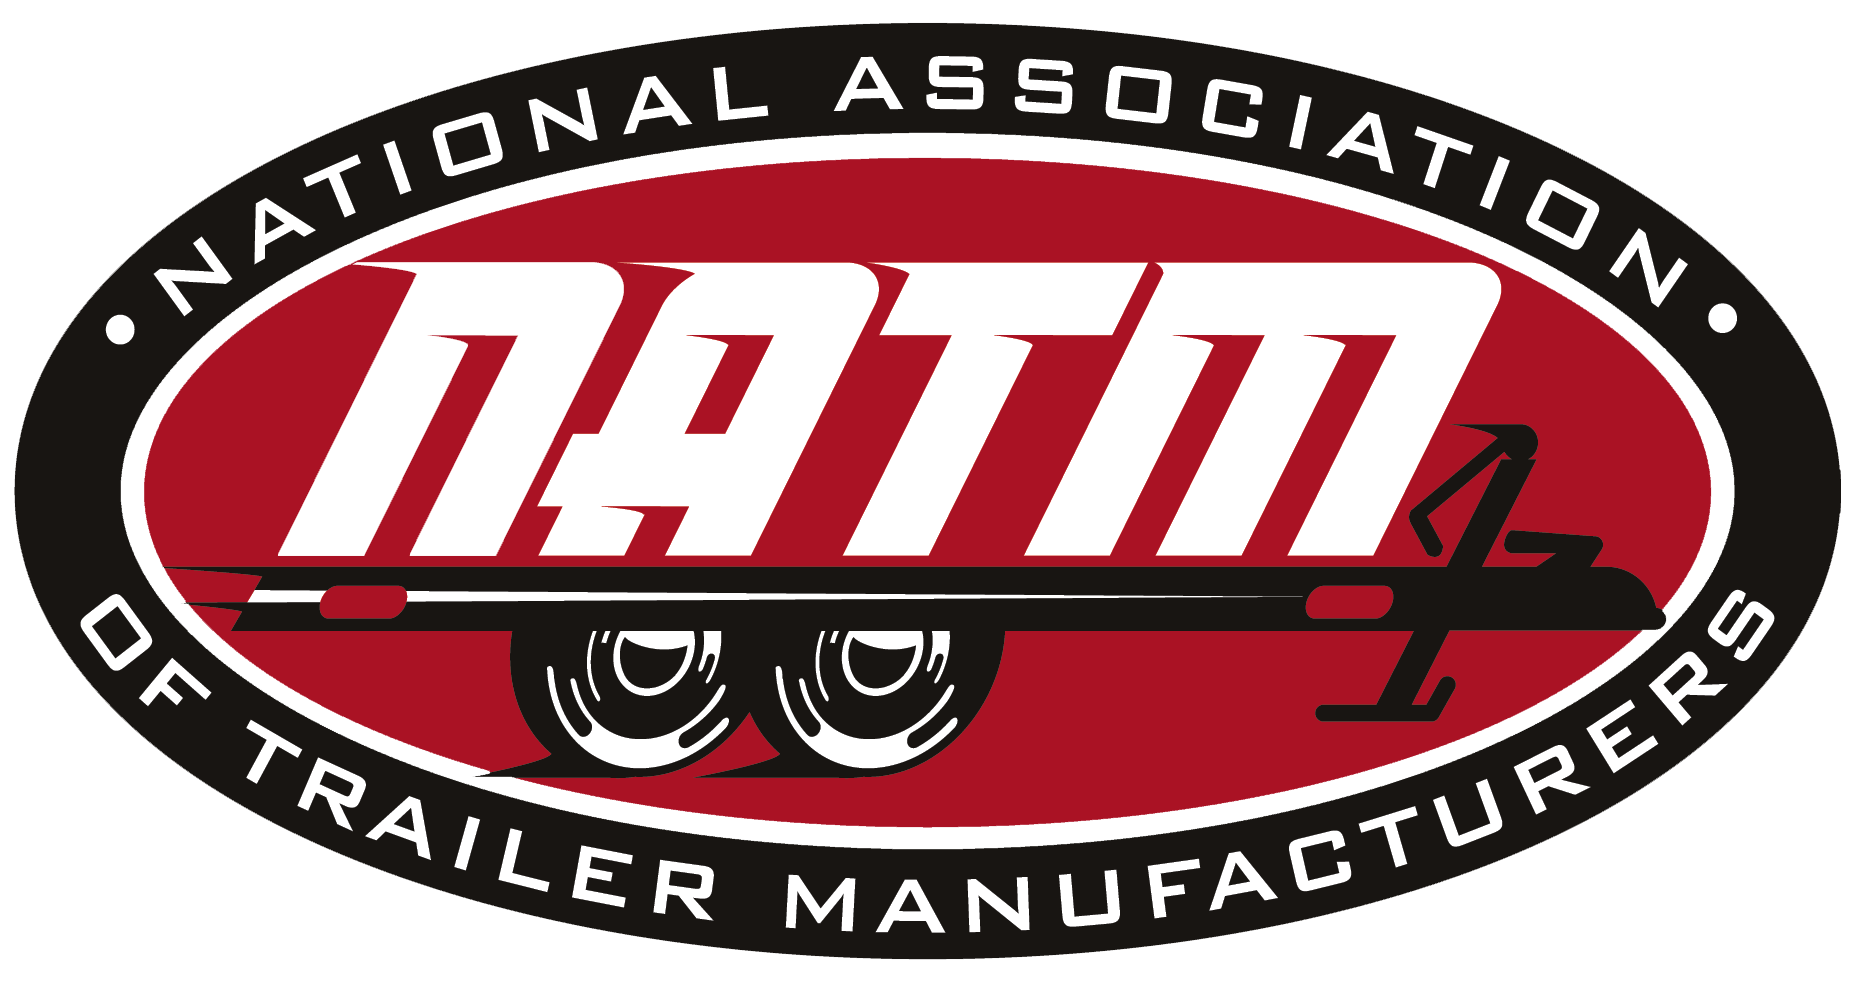 Gatorbak is a proud member of the National Association of Trailer Manufacturers.